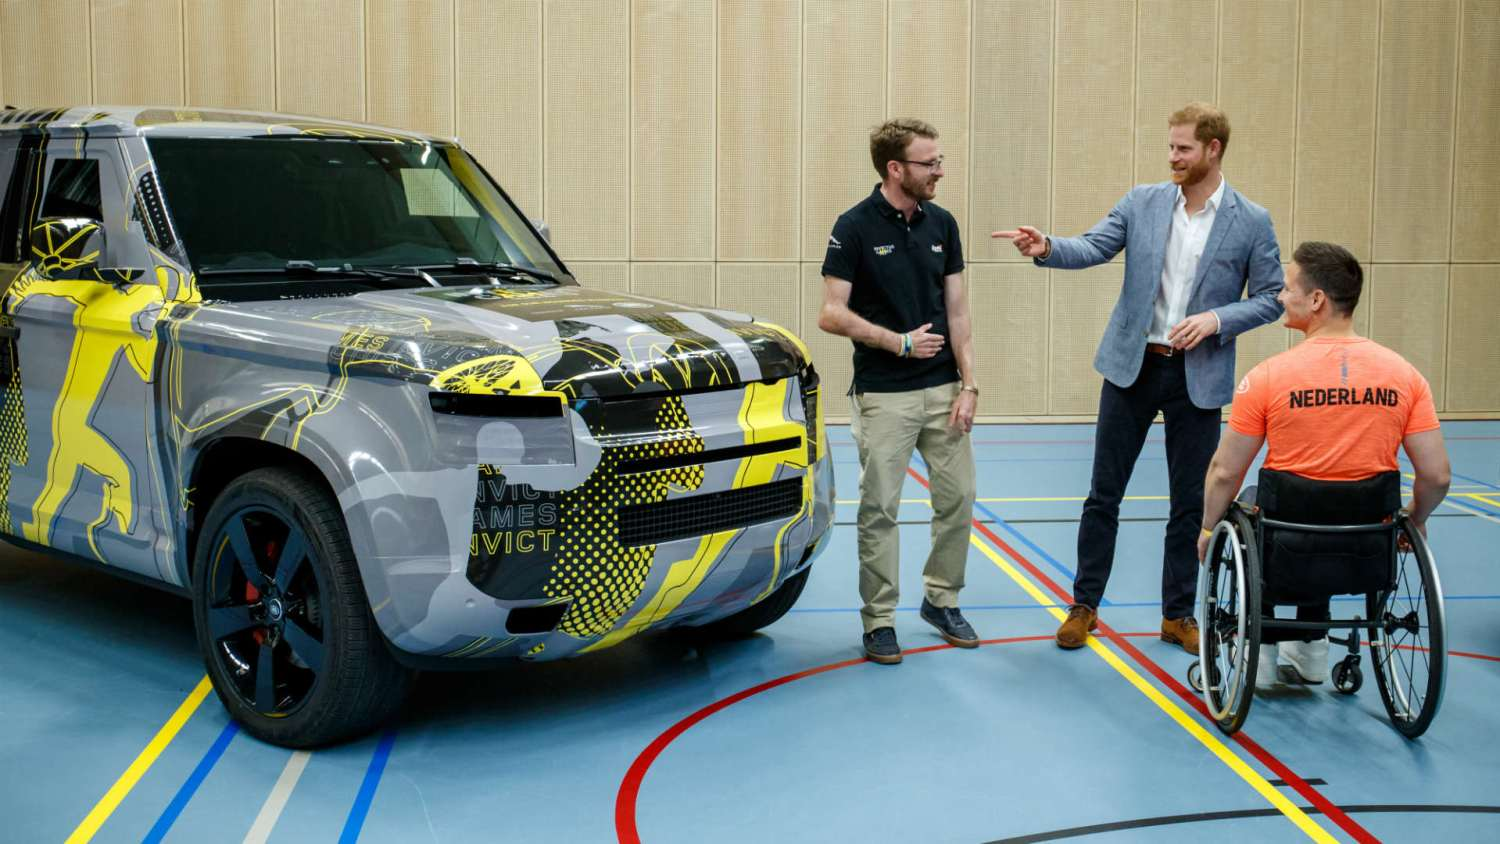 Prince Harry Land Rover Defender